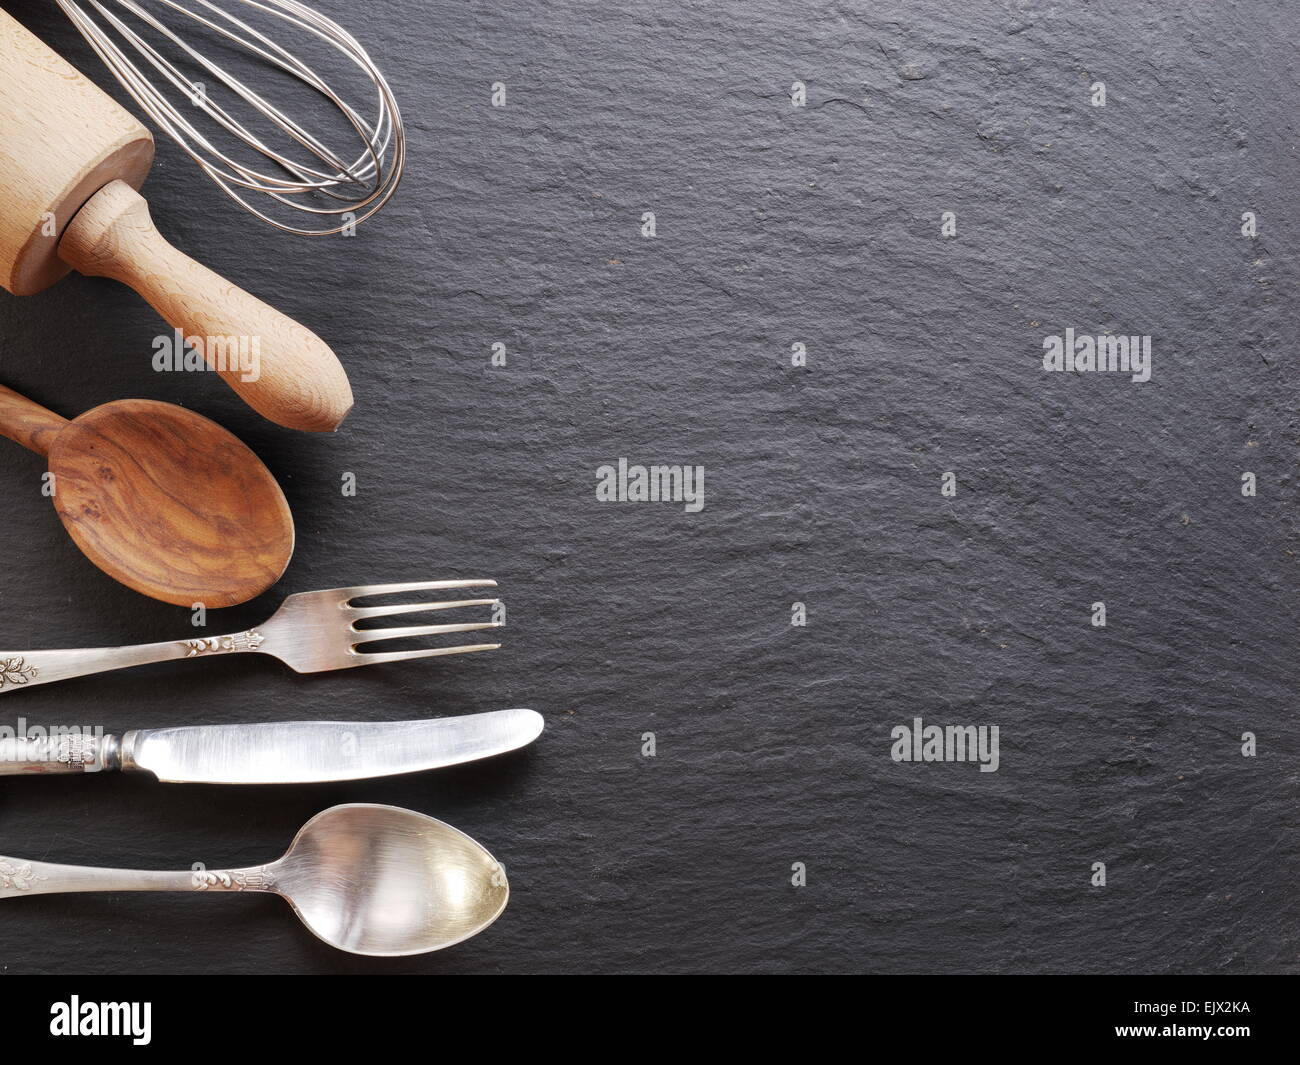 kitchen utensils background culinary cooking utensils on dark gray background background stock photo 80478142 alamy